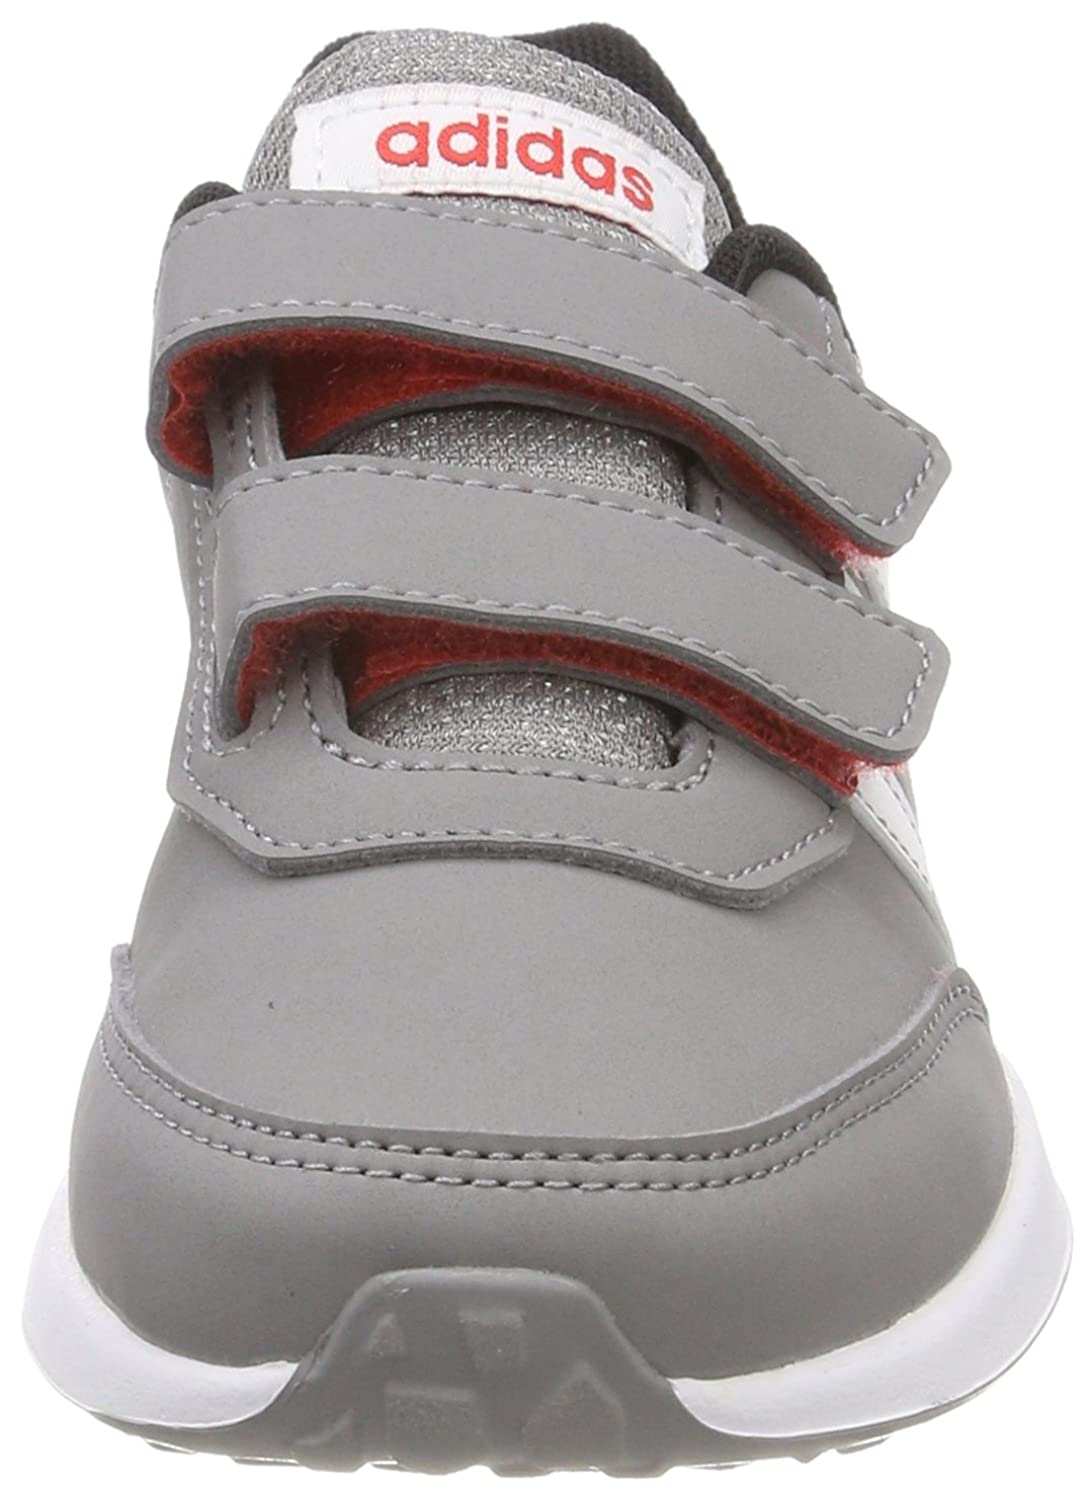 adidas Unisex Kids' Vs Switch 2 CMF Low-Top Sneakers: Amazon.co.uk: Shoes &  Bags